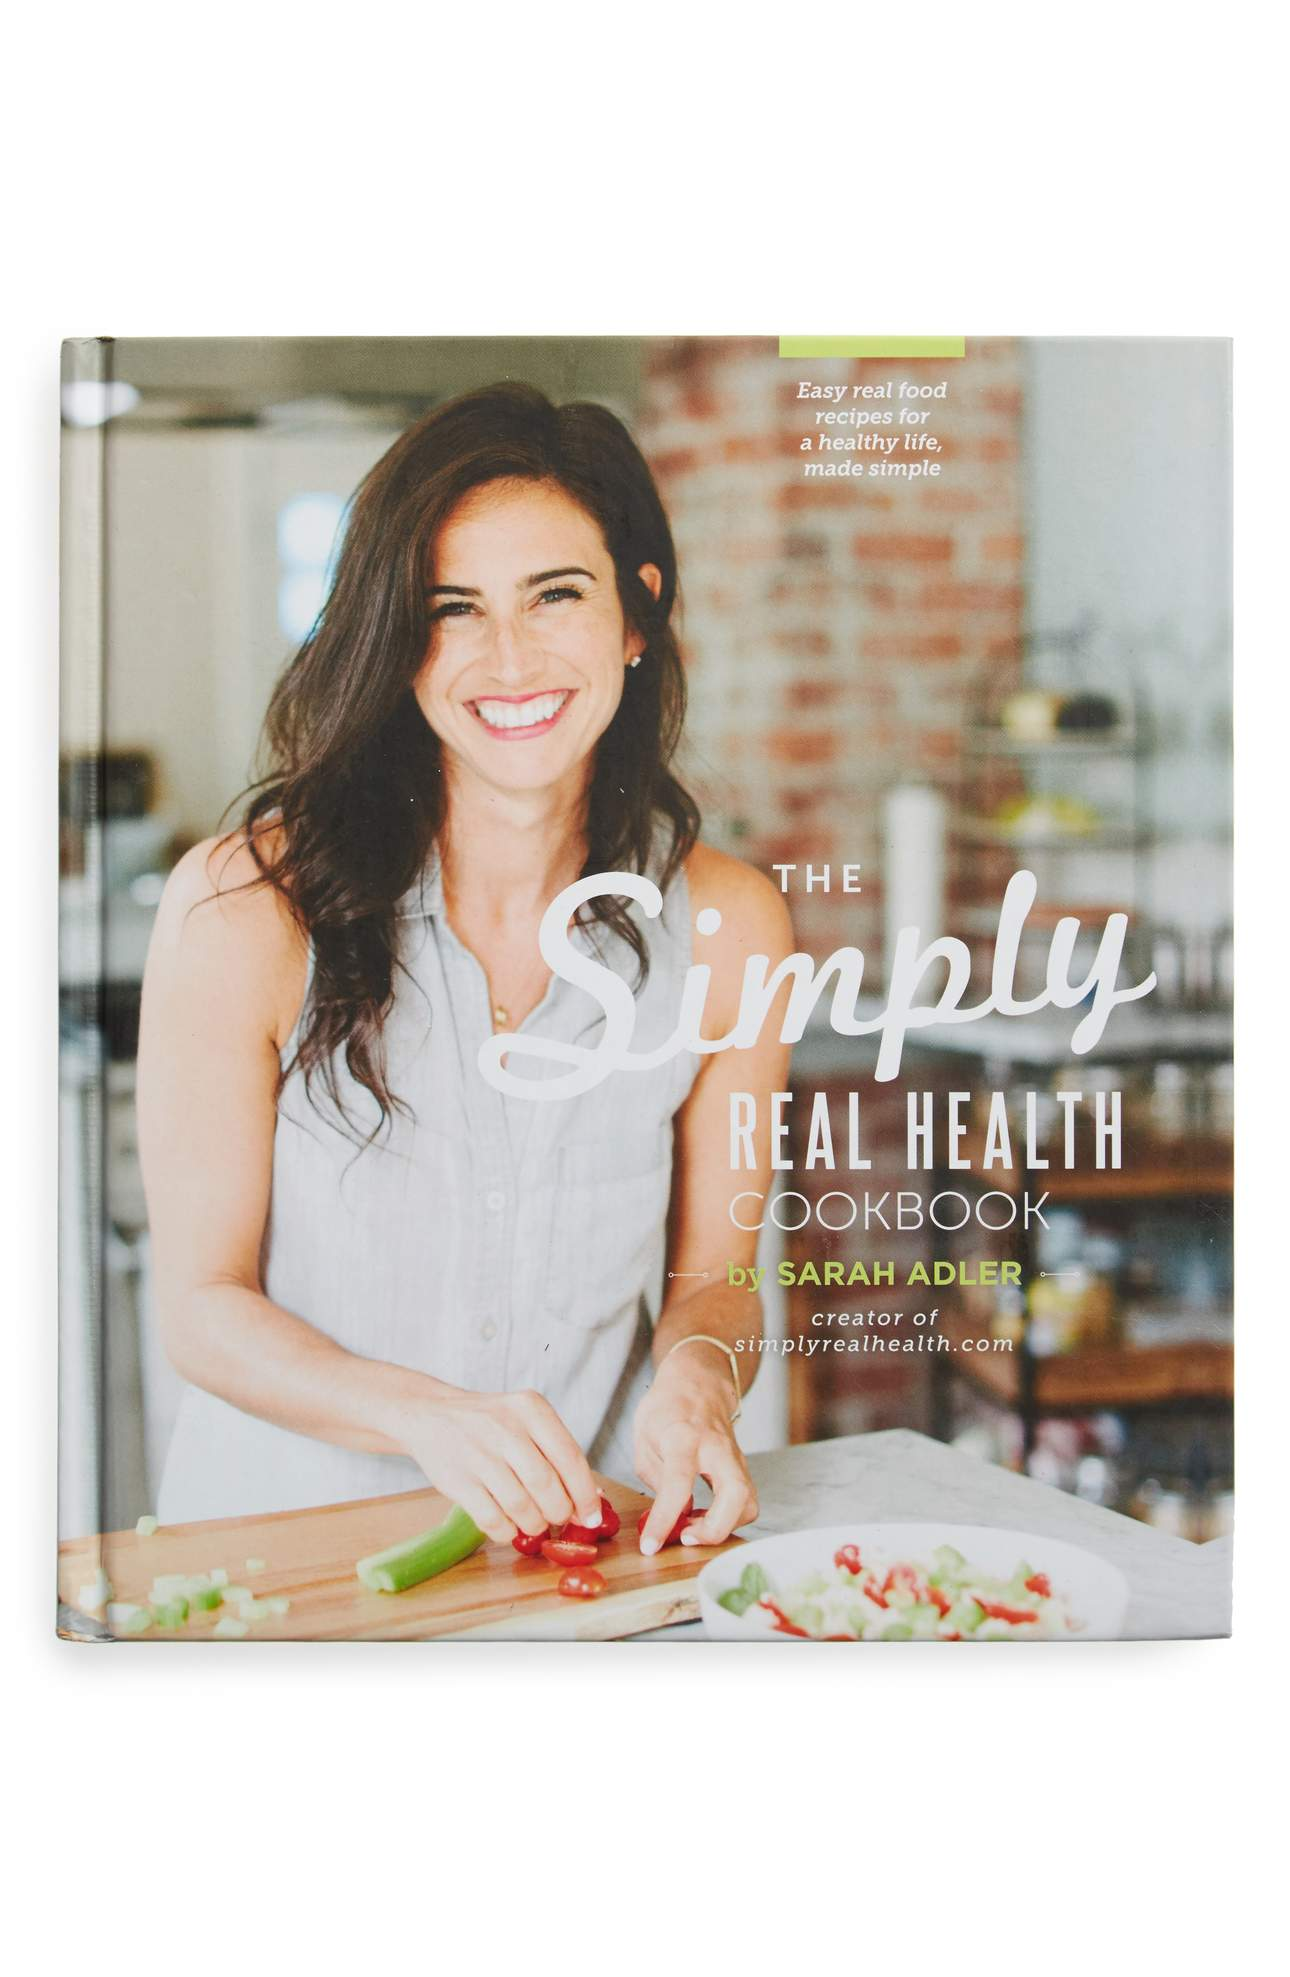 The Simply Real Health Cookbook - The first hardcover cookbook by Sarah Adler, the creator of simplyrealhealth.com contains 150 easy, real-food and 100% naturally gluten-free recipes. This book is complete with stunning photography, easier ways to eat more vegetables, and creative tips for any level of home-cook looking to eat a healthier lifestyle. Price: $38